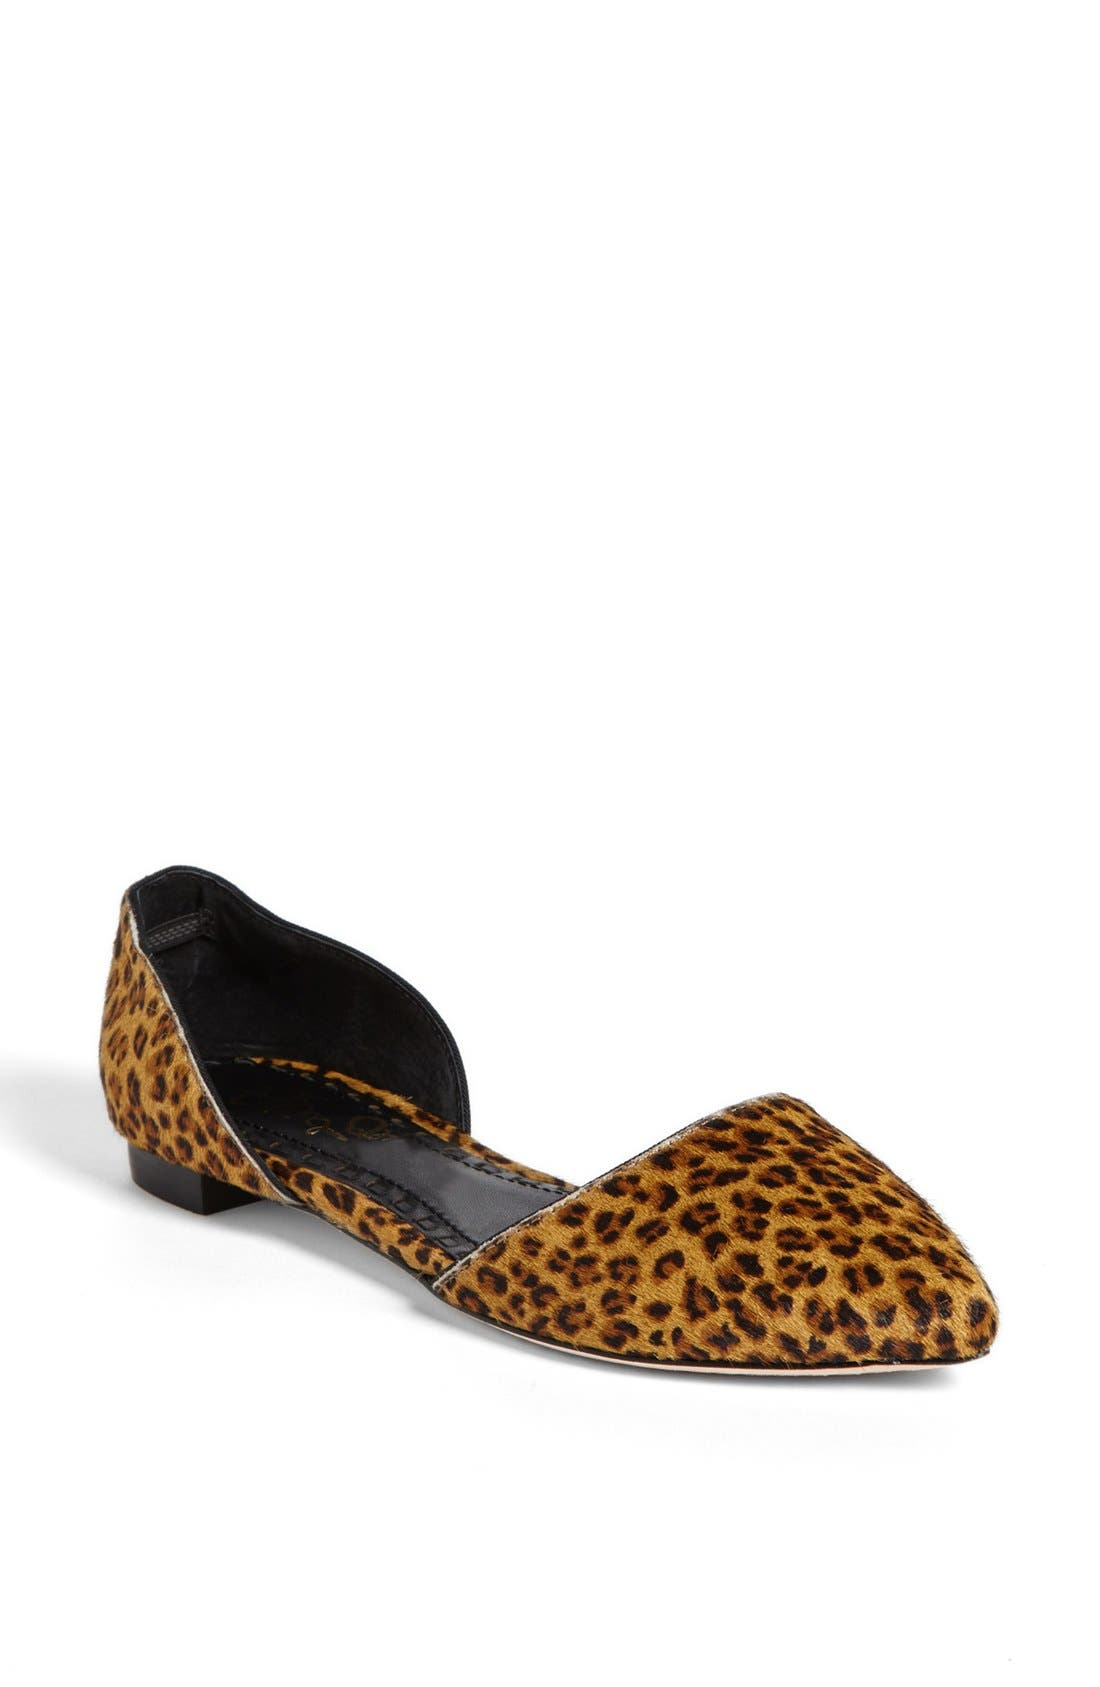 Alternate Image 1 Selected - Alice + Olivia 'Hilary' d'Orsay Flat